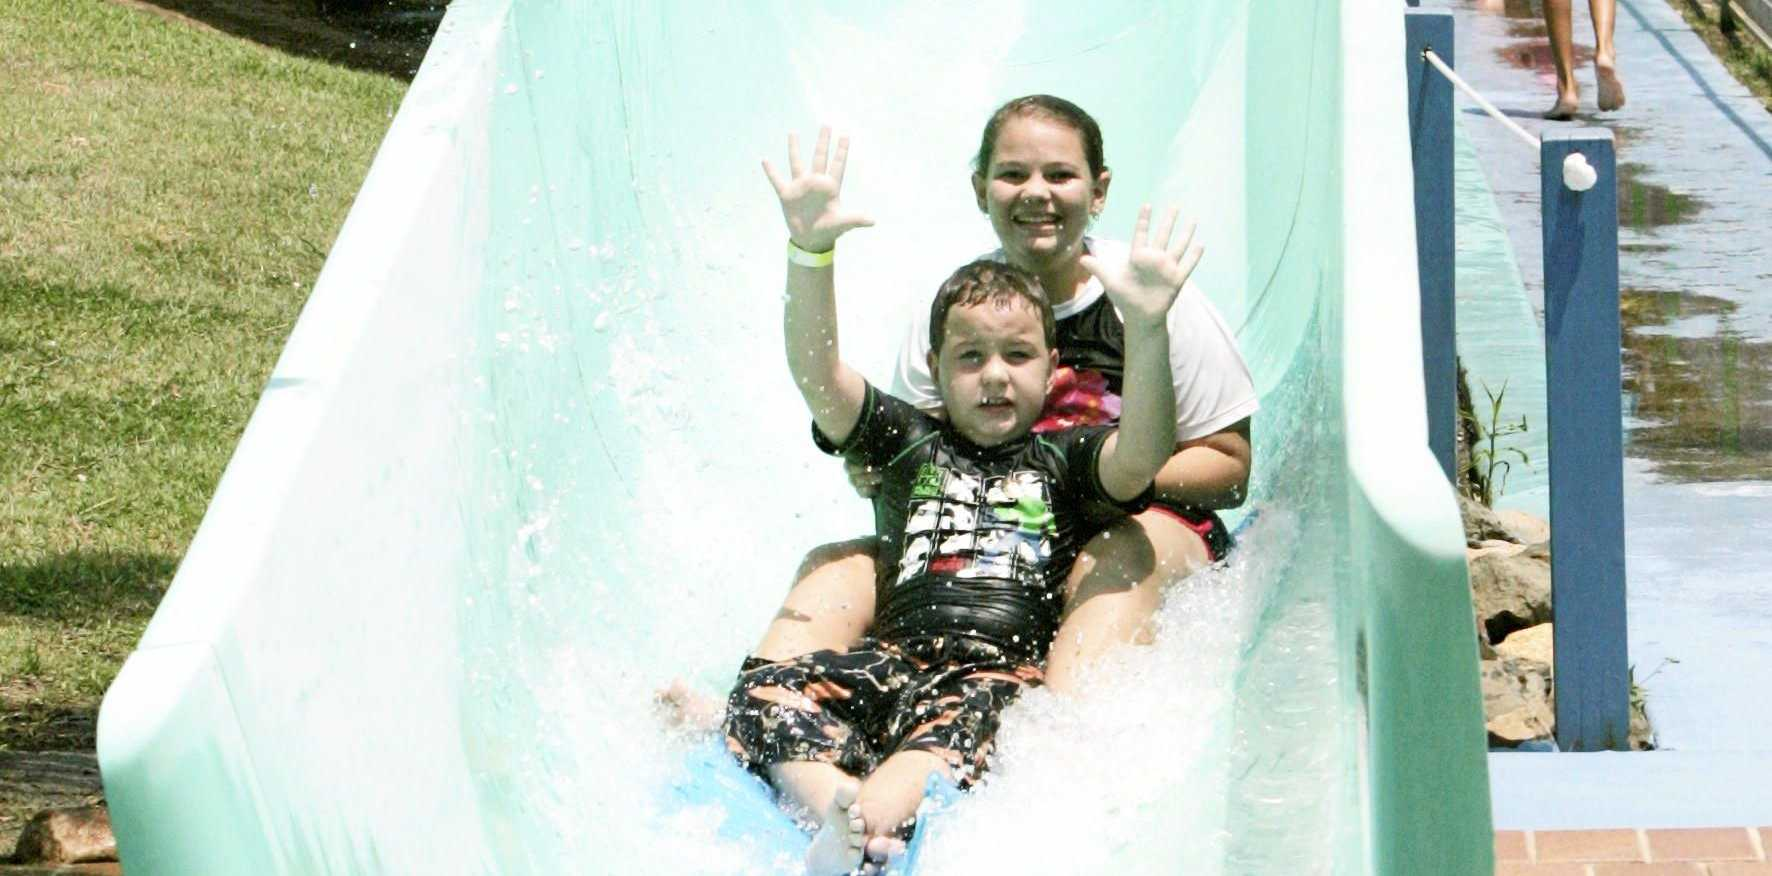 Hannah Ellis and Lachlan Charles slide down the slides at the former Rock Pool Water Park in Rockhampton in 2012. A new park will be coming to Rockhampton this December just in time for summer. Photo Sharyn O'Neill / The Morning Bulletin